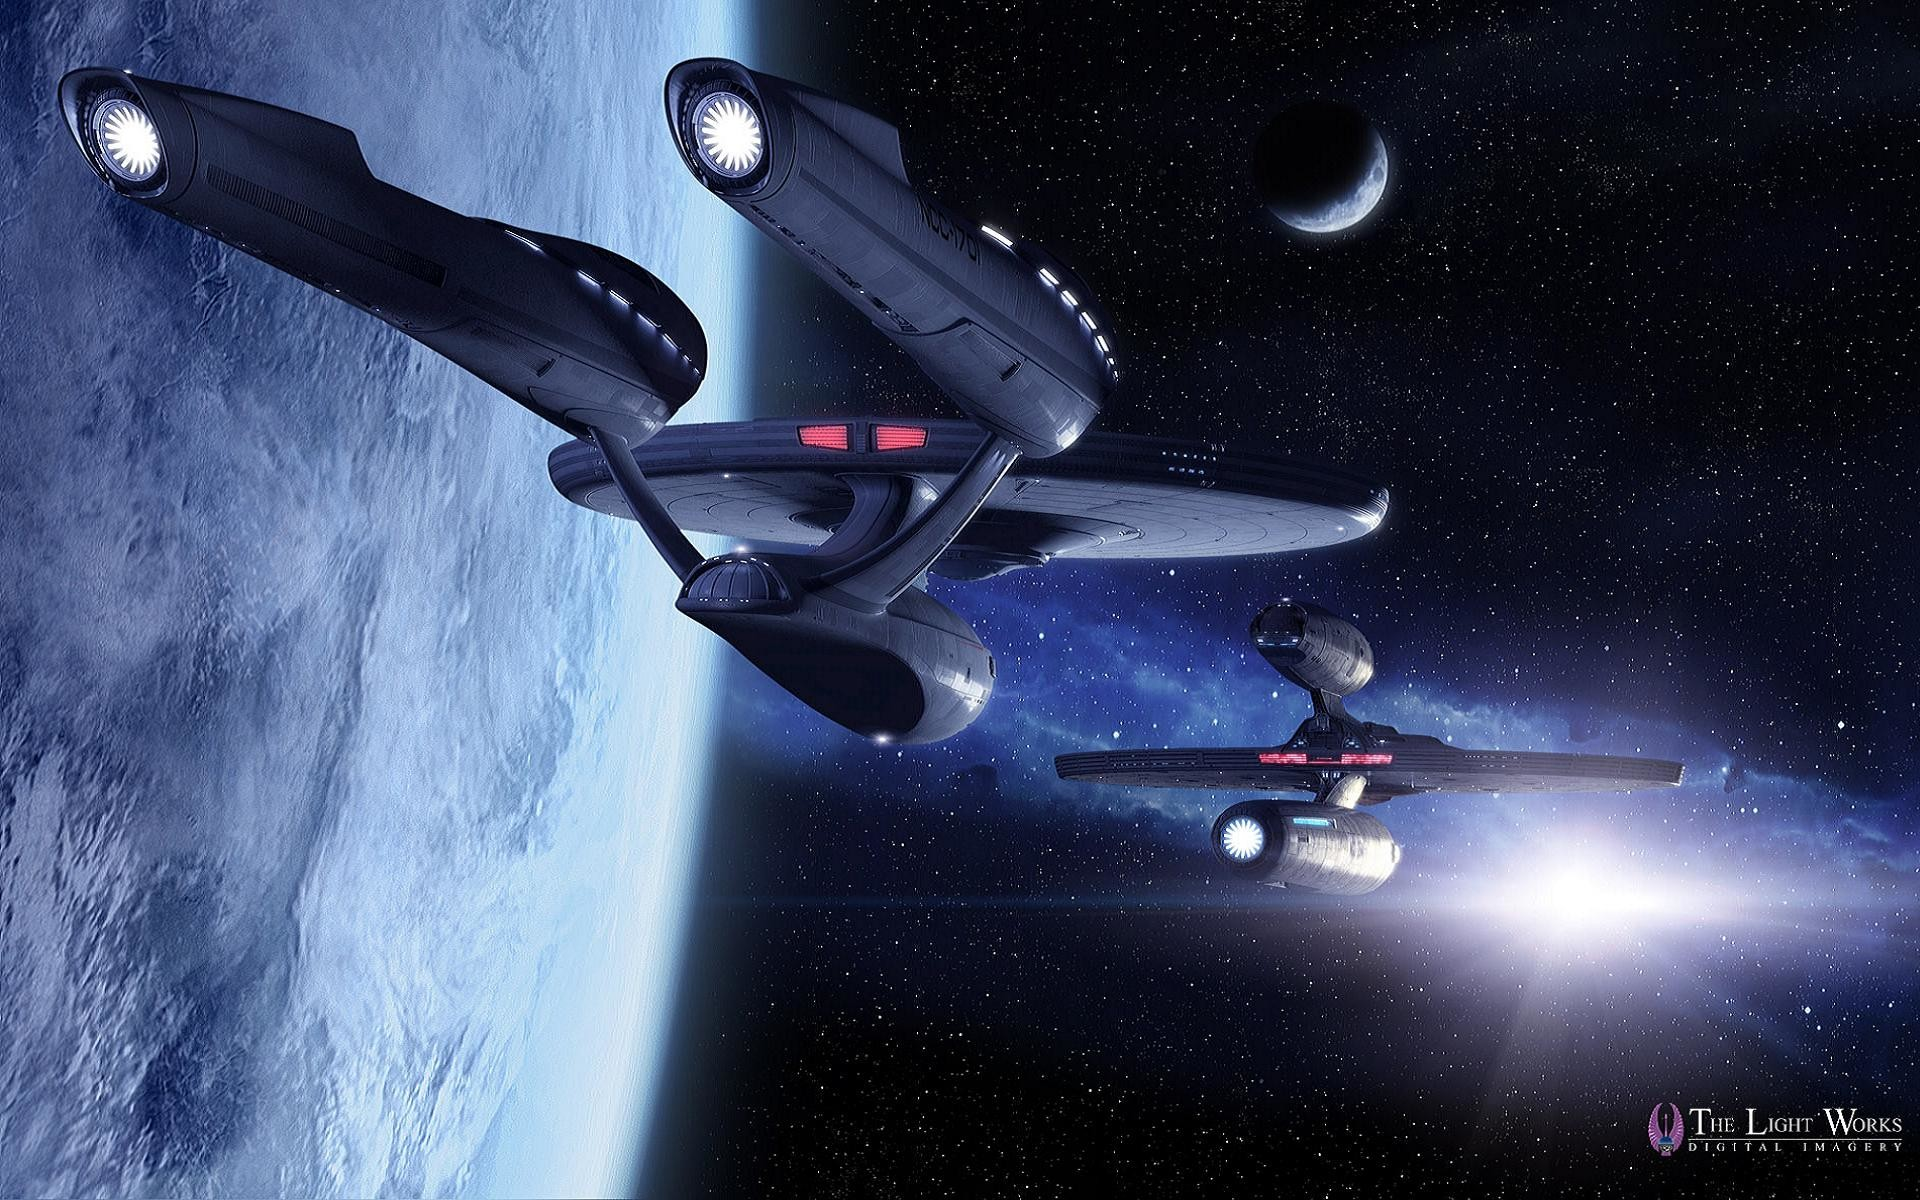 Spaceships Puter Images Spaceship Wallpaper with Resolution